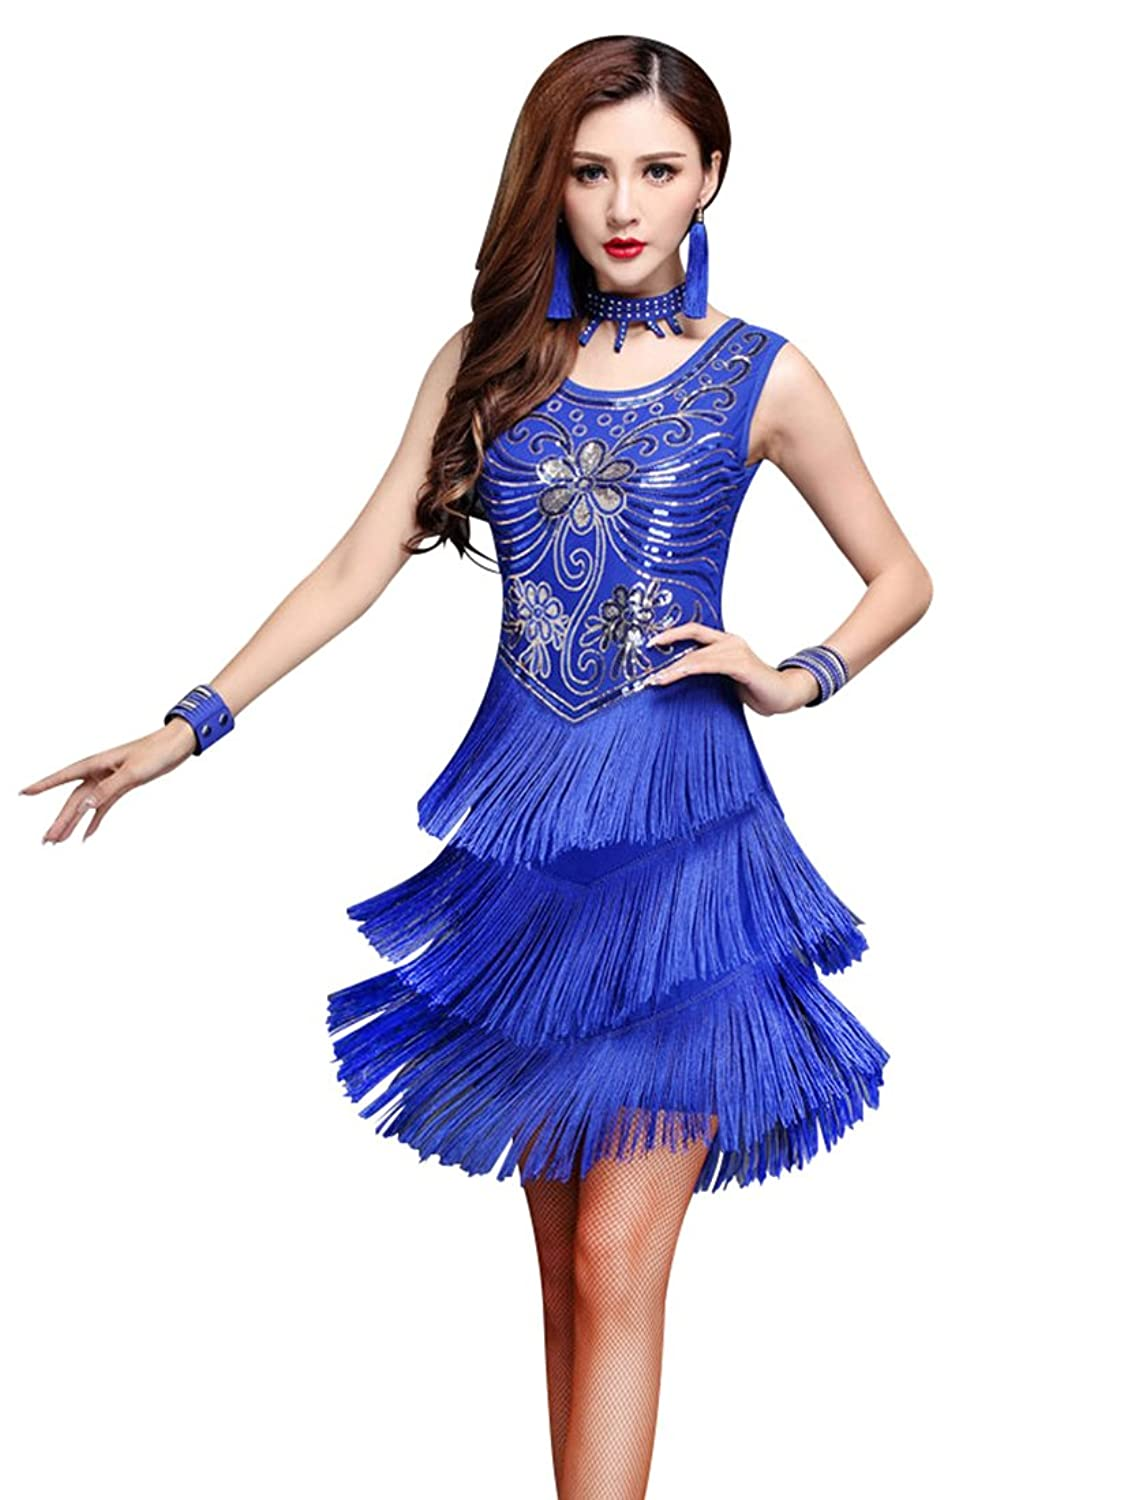 e0b0068ccf1 Top 10 wholesale 1920 Outfits - Chinabrands.com